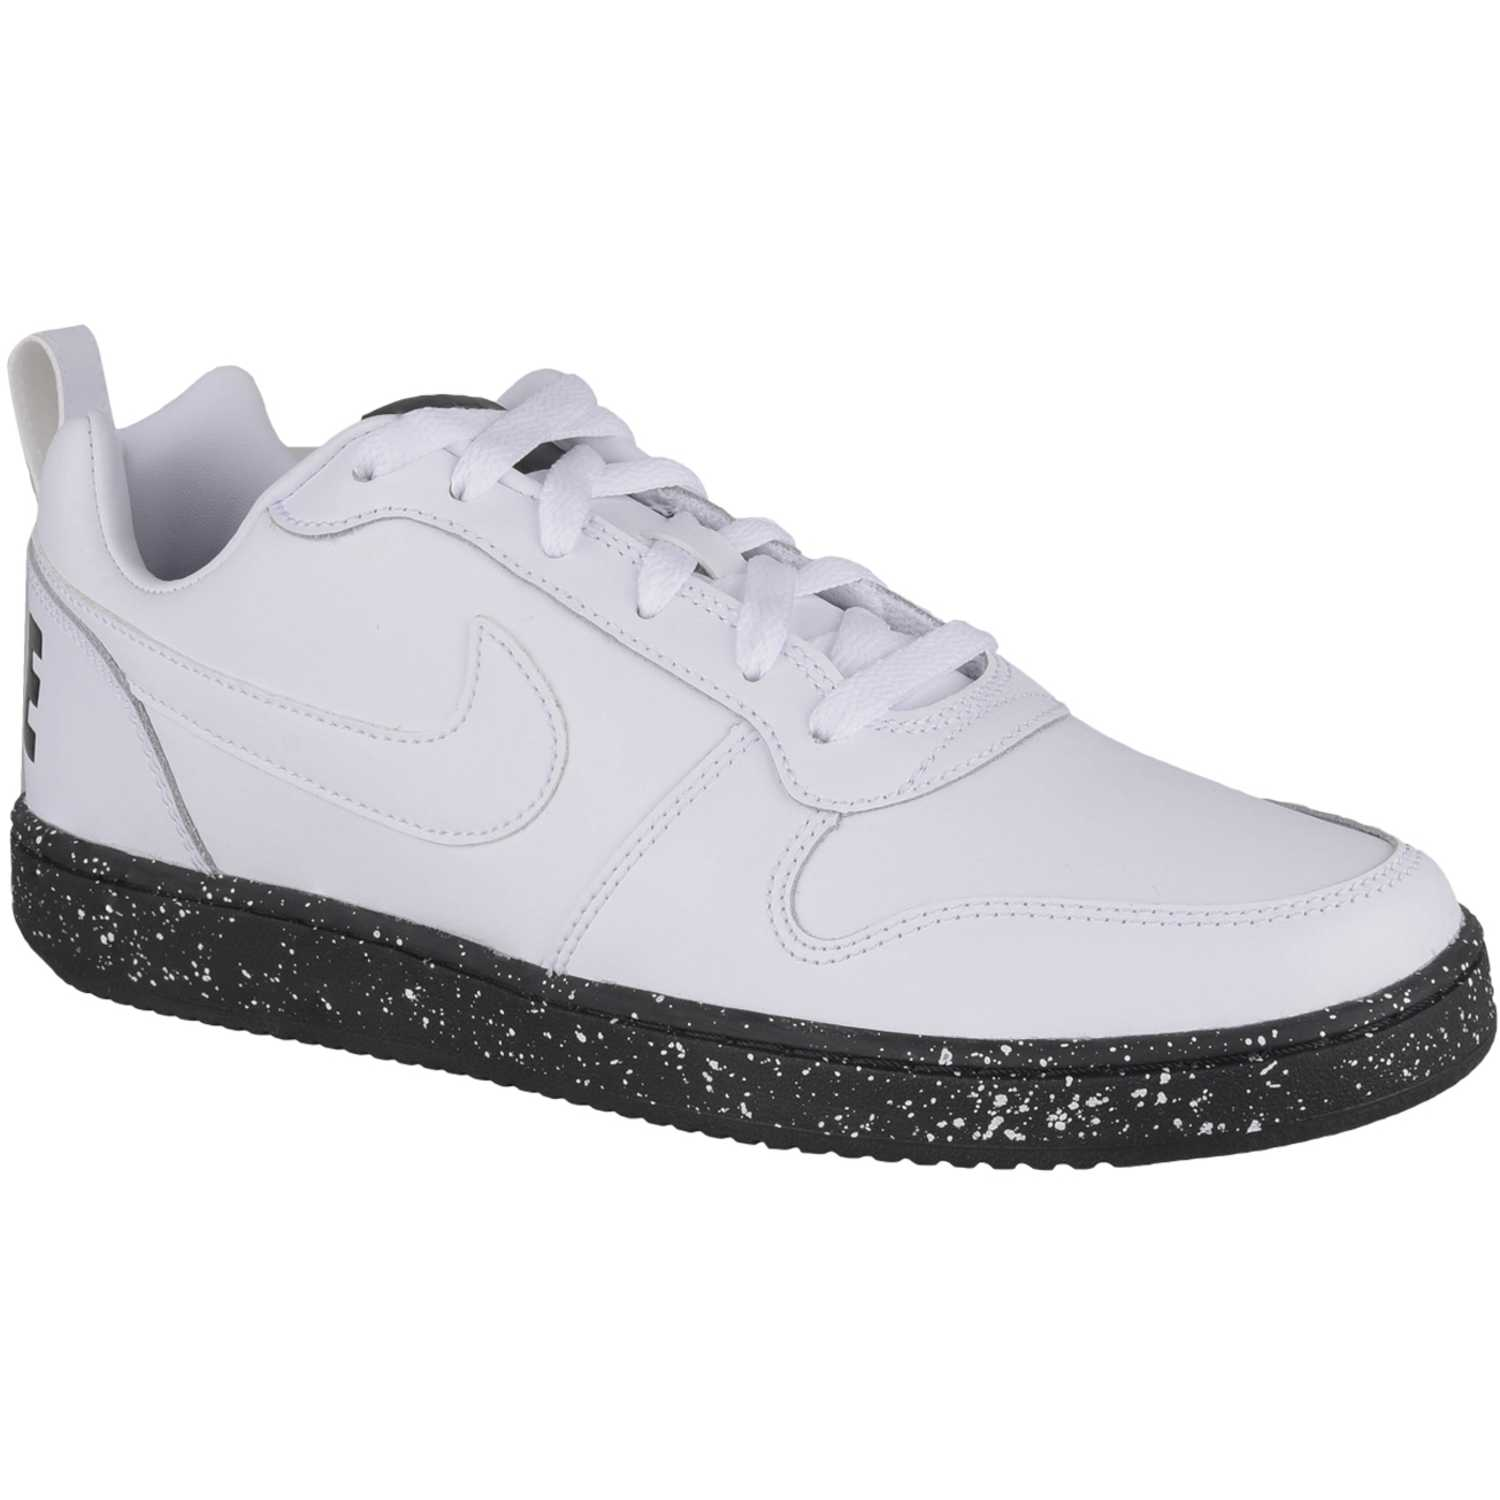 caf5a3f3a73 Zapatilla de Hombre Nike Blanco / negro nike court borough low se ...